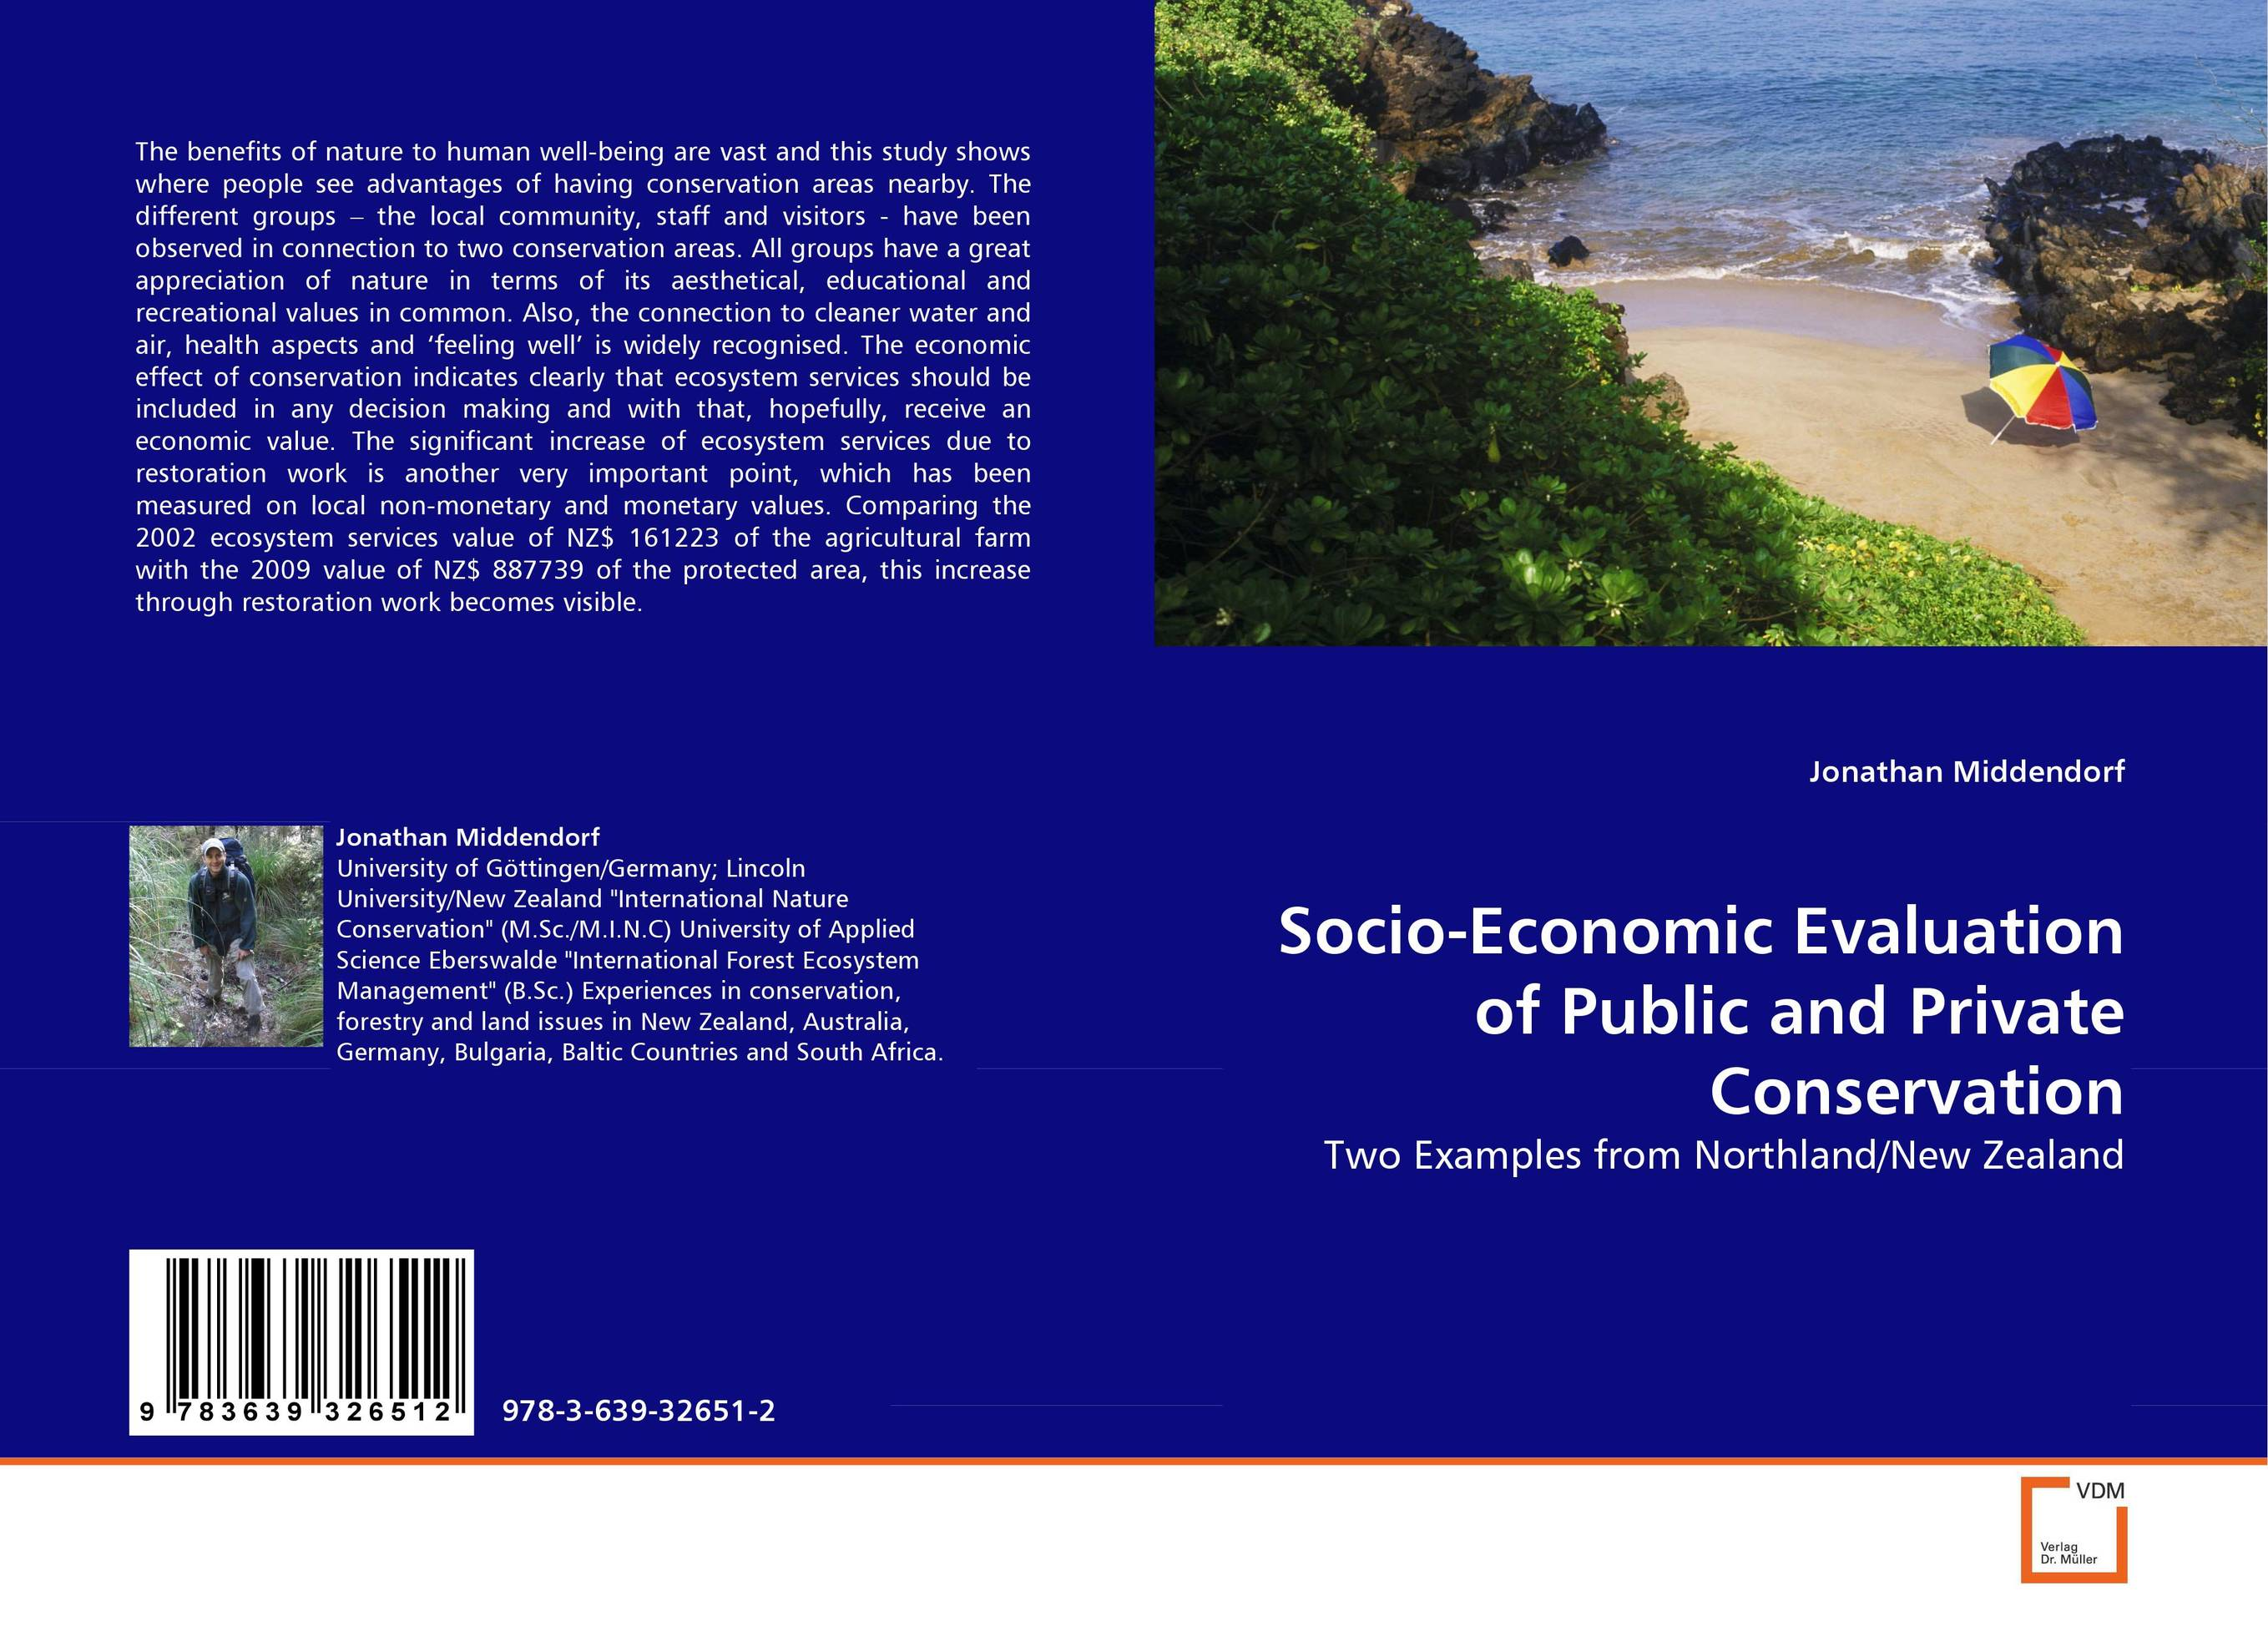 Socio-Economic Evaluation of Public and Private Conservation